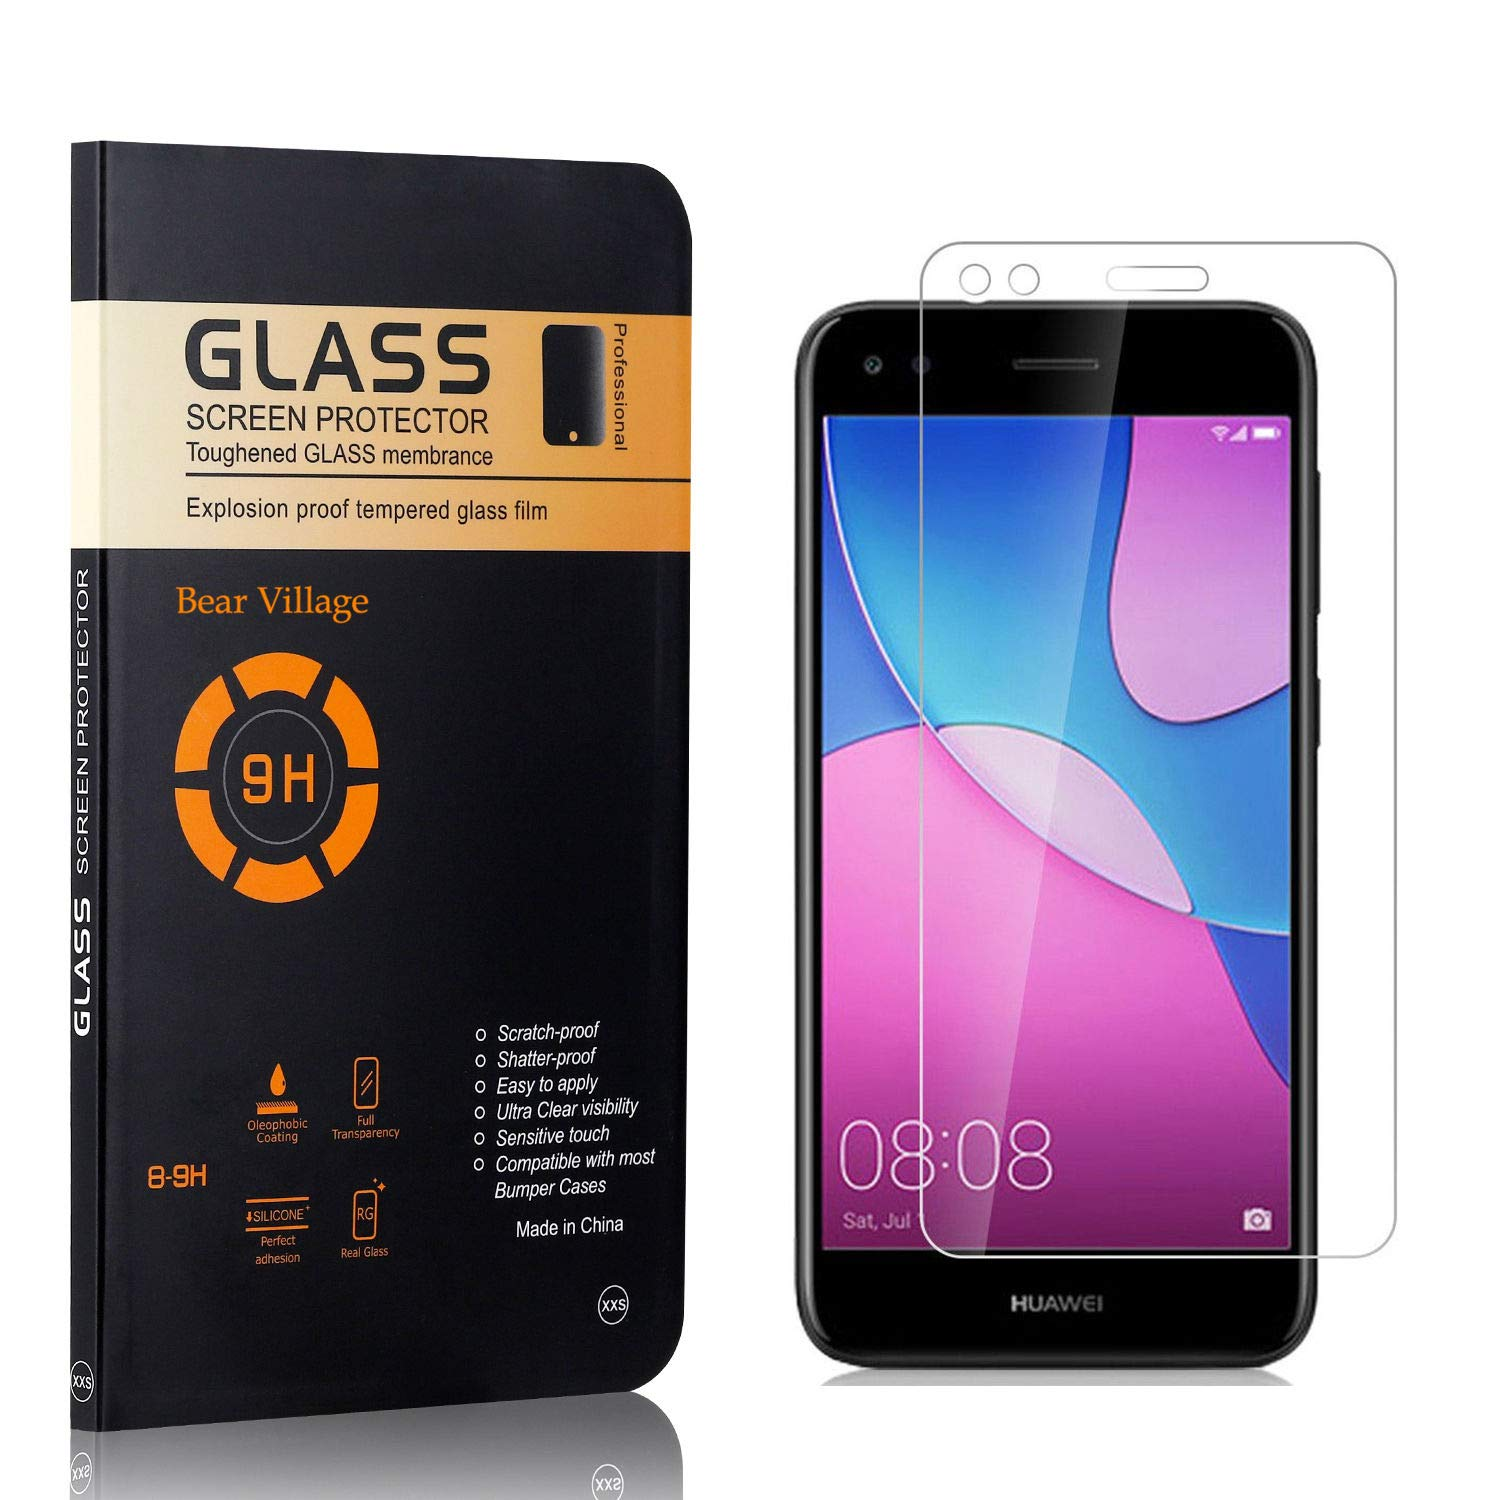 Ultra Clear Screen Protector Film for Huawei P9 Lite Mini 4 Pack Screen Protector for Huawei P9 Lite Mini Bear Village 9H Transparent Tempered Glass Screen Protector